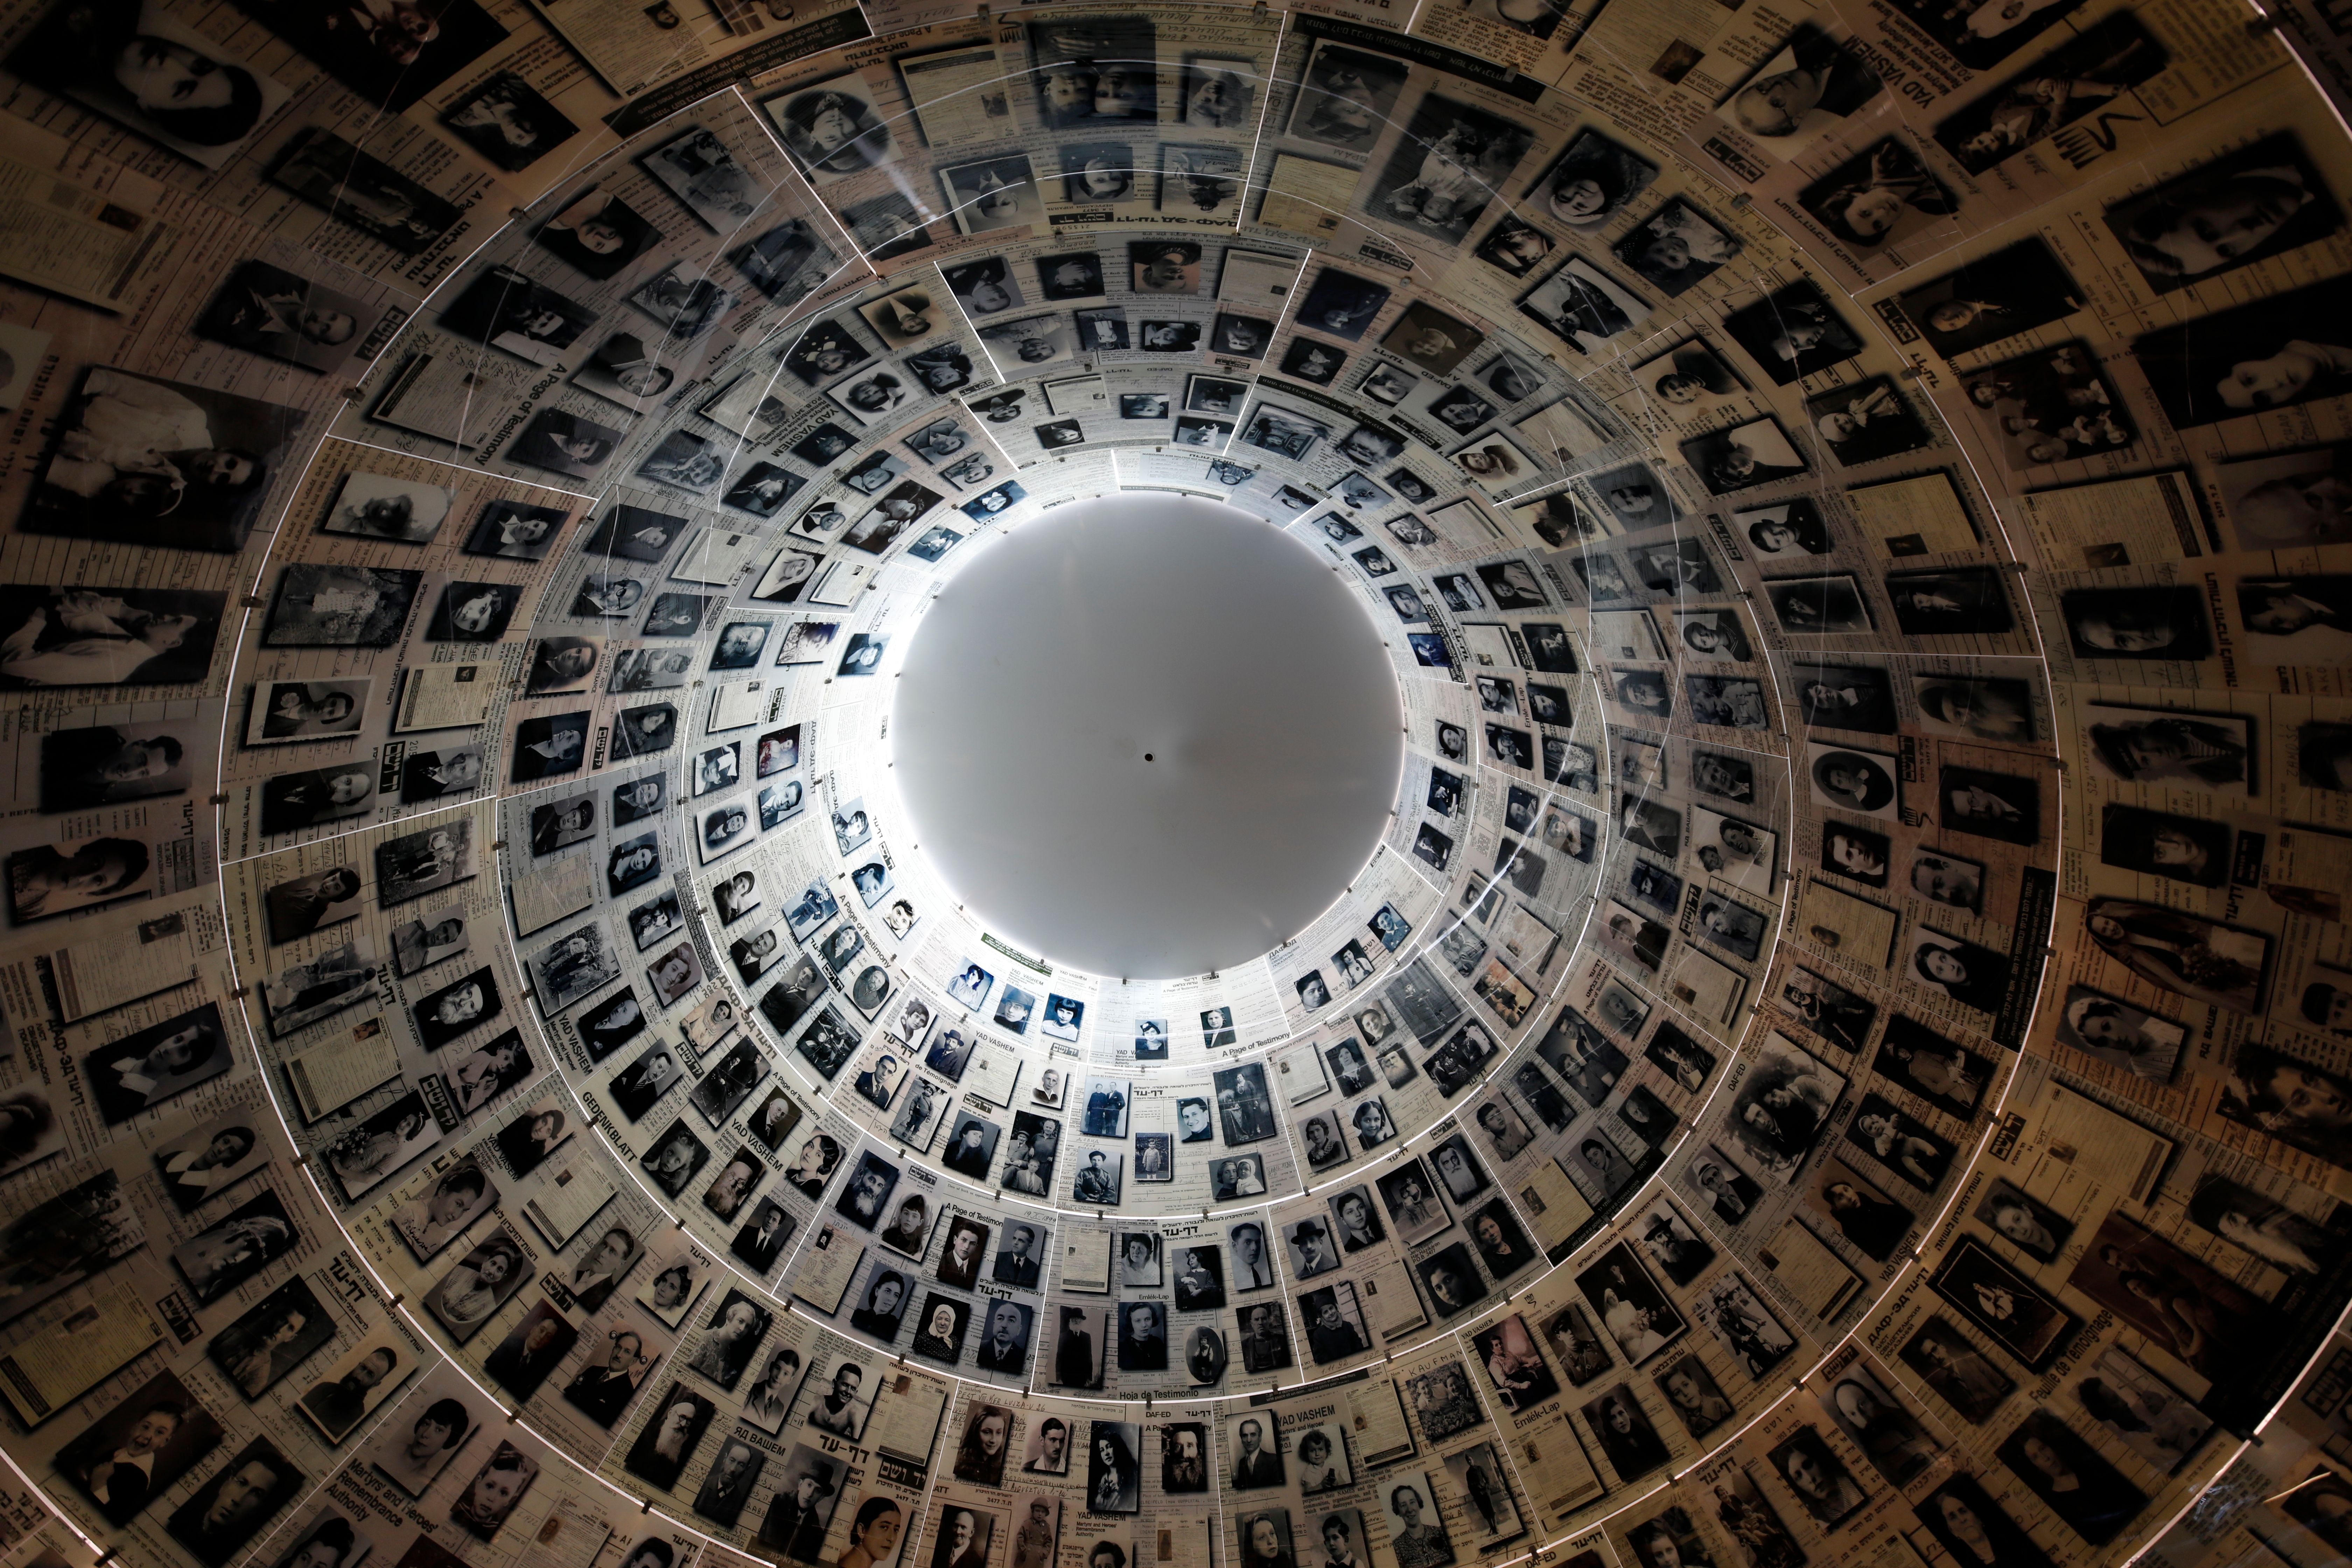 A picture taken on April 20, 2020, shows a view of the cieling in the Hall of Names, bearing names and pictures of Jewish Holocaust victims, at the Yad Vashem Holocaust memorial museum in Jerusalem. - Movement and travel restrictions in place to contain the pandemic have forced this week's Holocaust Remembrance Day -- Yom HaShoah in Hebrew -- to be exclusively digital for the first time. In a normal year, symbolic events are organised at various locations, notably with survivors at the sites in Europe where the Nazis built concentration and extermination camps. This year, testimonials from survivors will be streamed online and featured in a pre-recorded ceremony to be broadcast in Israel by Jerusalem's Yad Vashem Holocaust memorial centre, when Yom HaShoah begins on this evening. (Photo by MENAHEM KAHANA / AFP) (Photo by MENAHEM KAHANA/AFP via Getty Images)